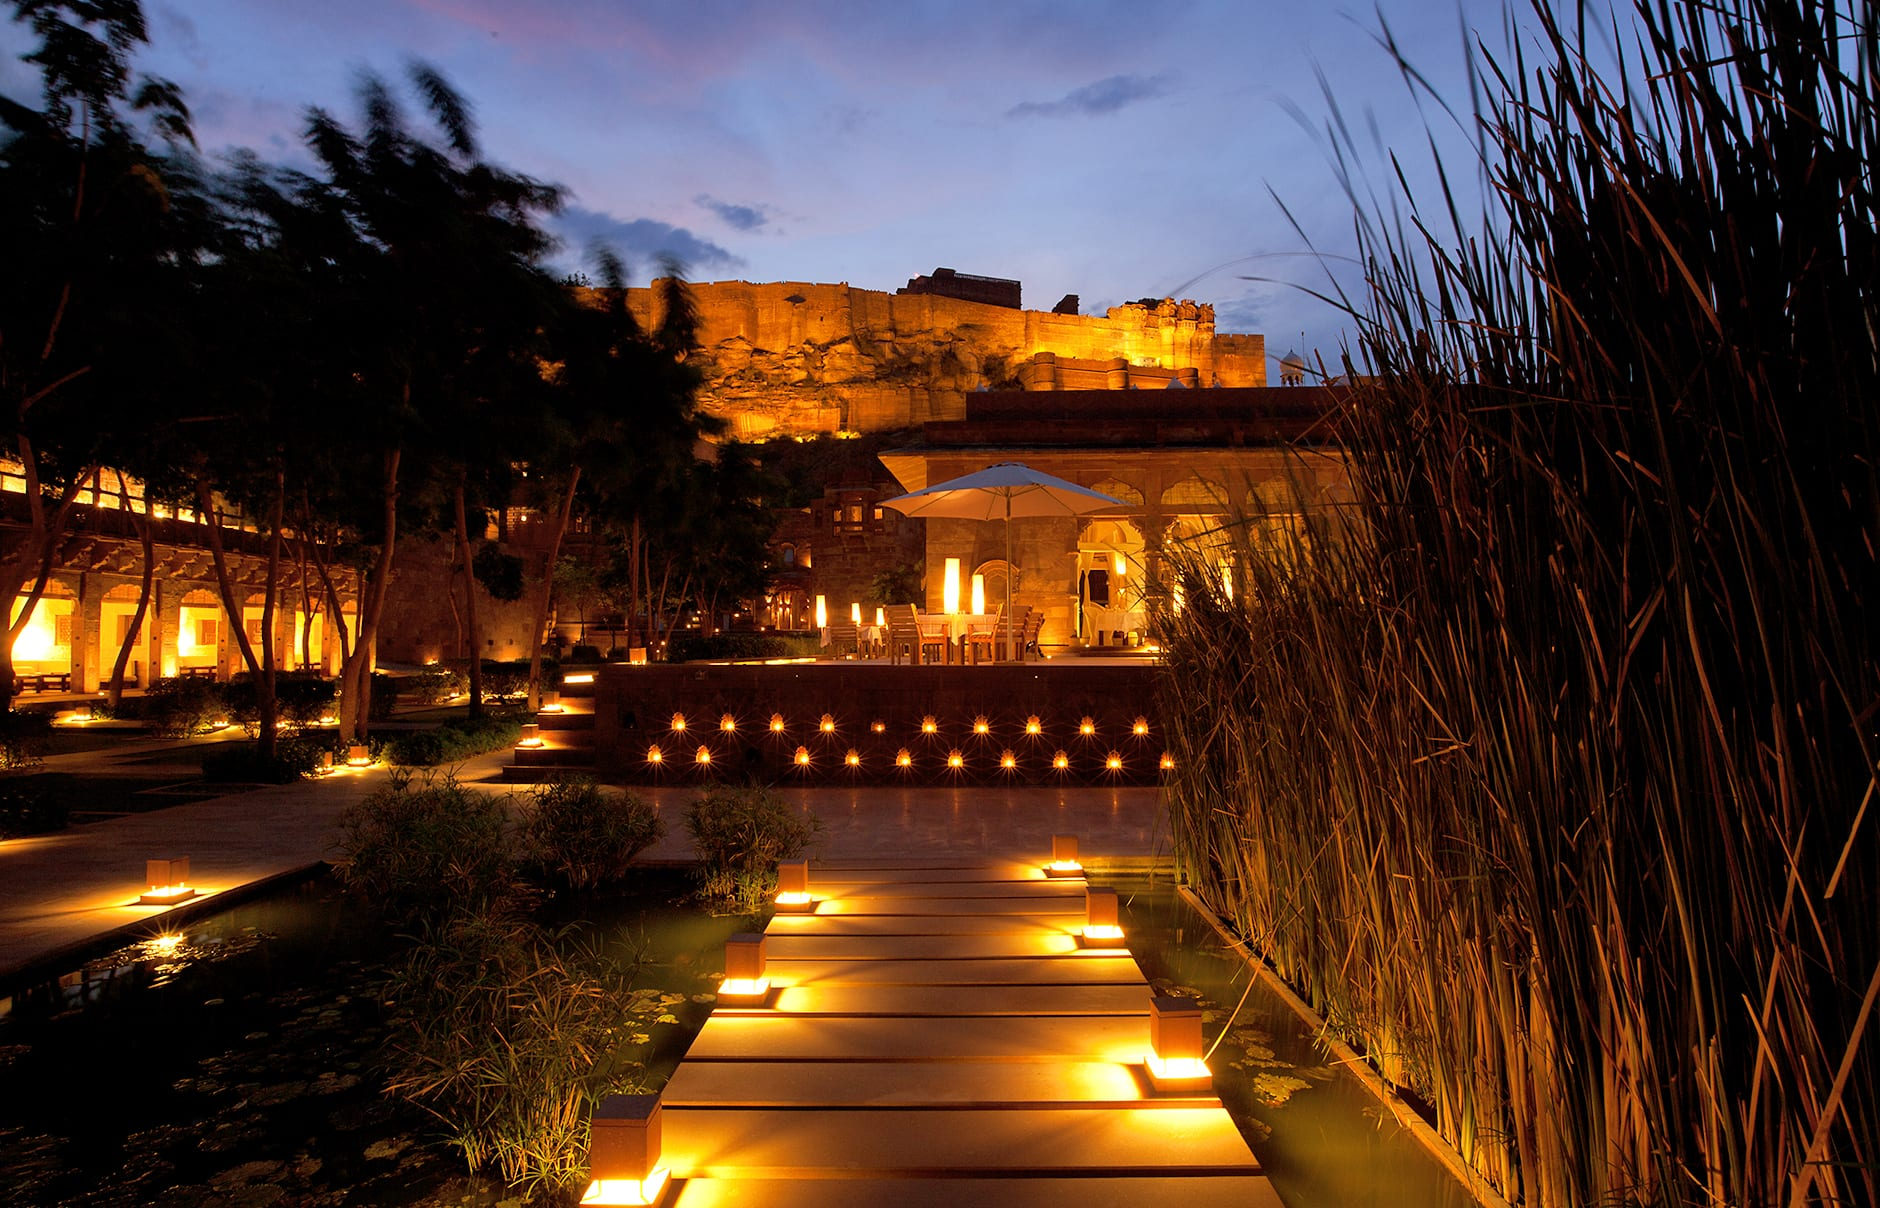 Raas evening view. Raas Jodhpur, India. Luxury Hotel Review by TravelPlusStyle. Photo © Rass